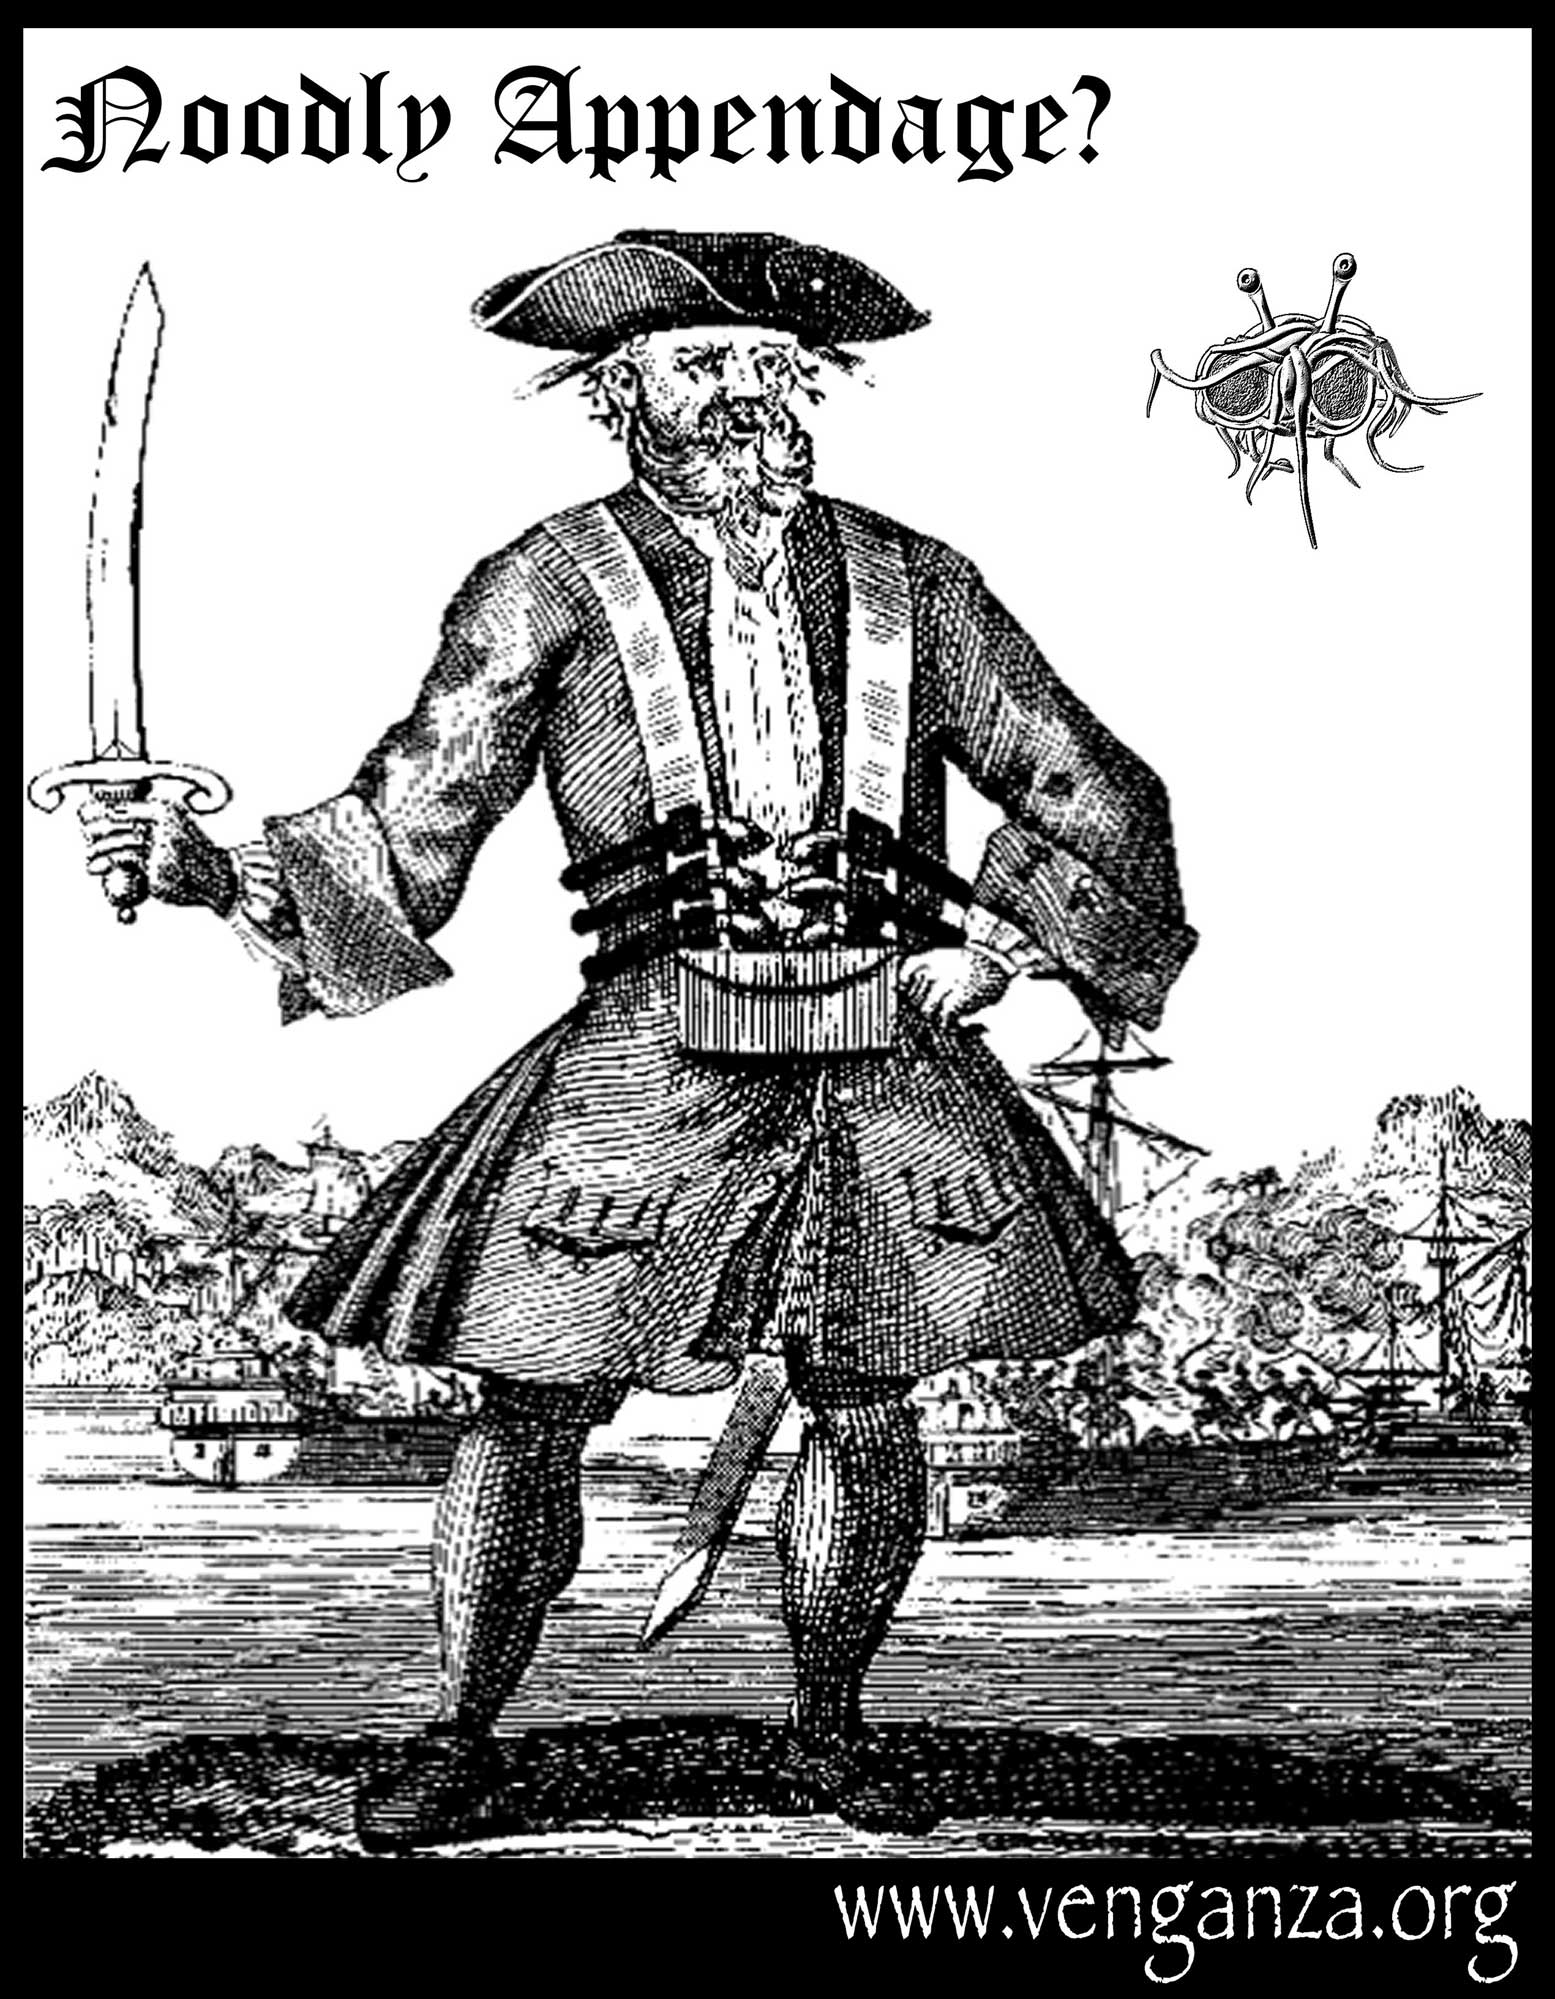 Now this is a PIRATE.  This is REALLY a pirate!